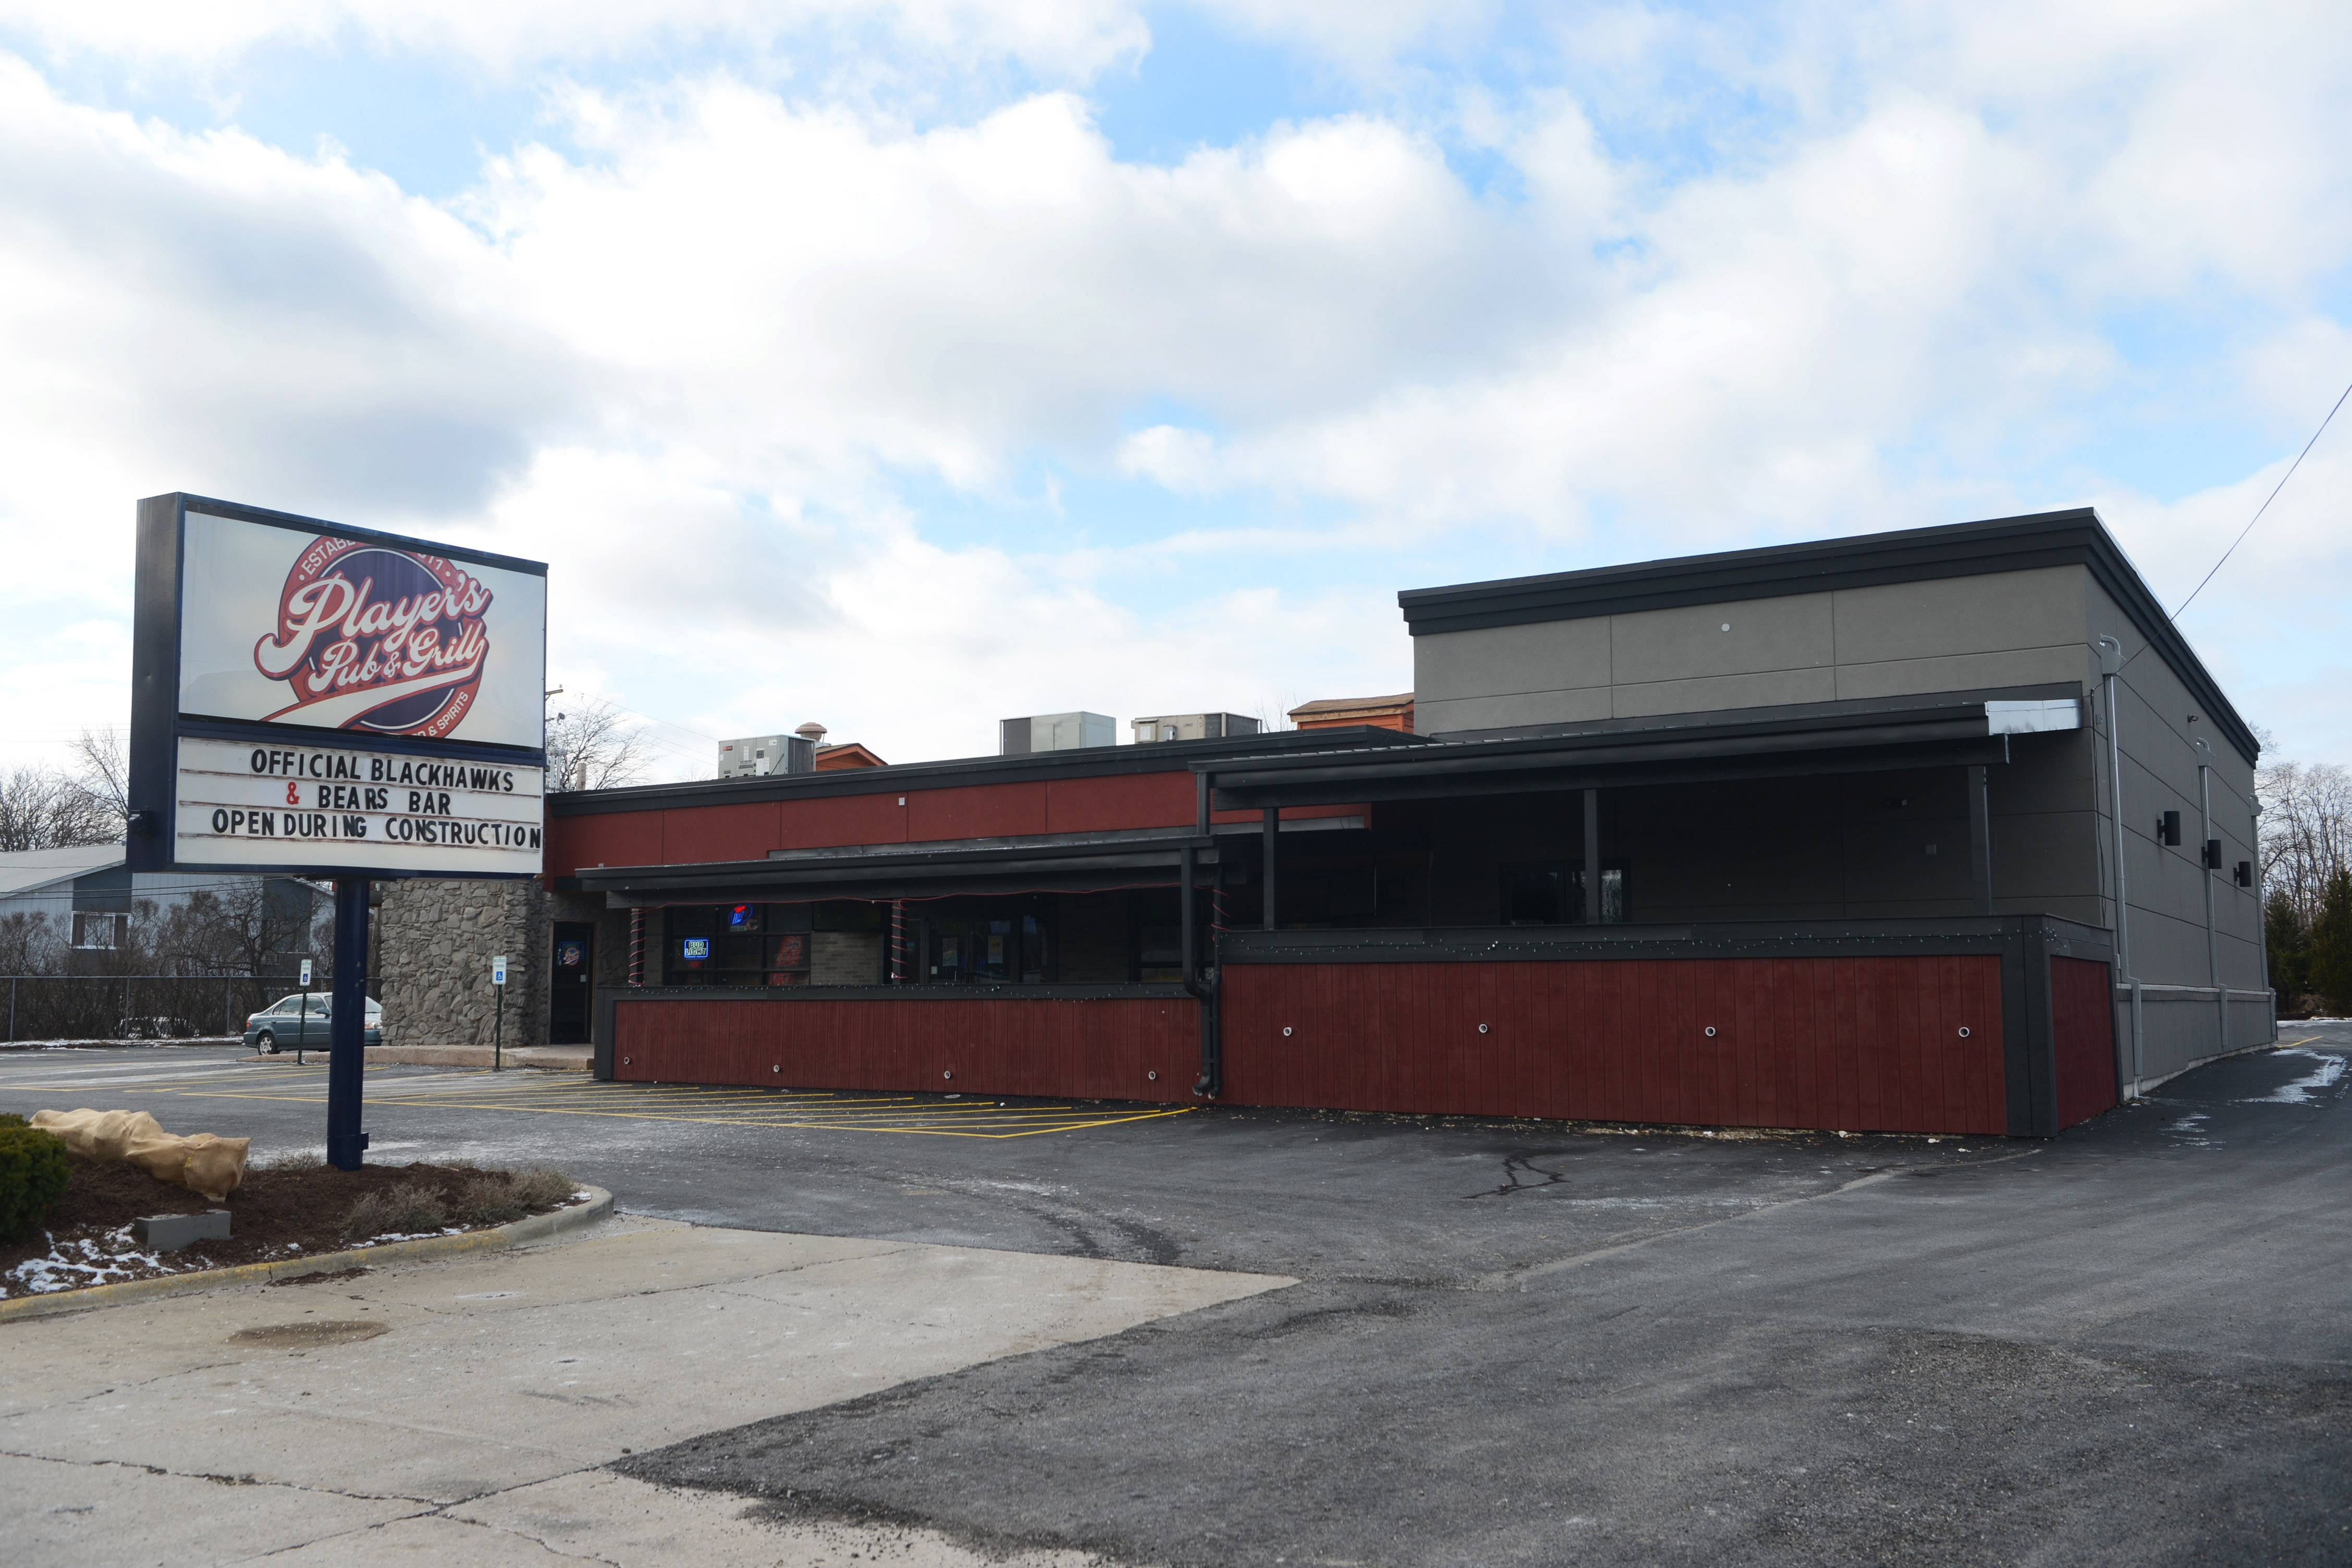 Player's Pub and Grill received the final part of a $500,000 payout to build an off-track betting addition.